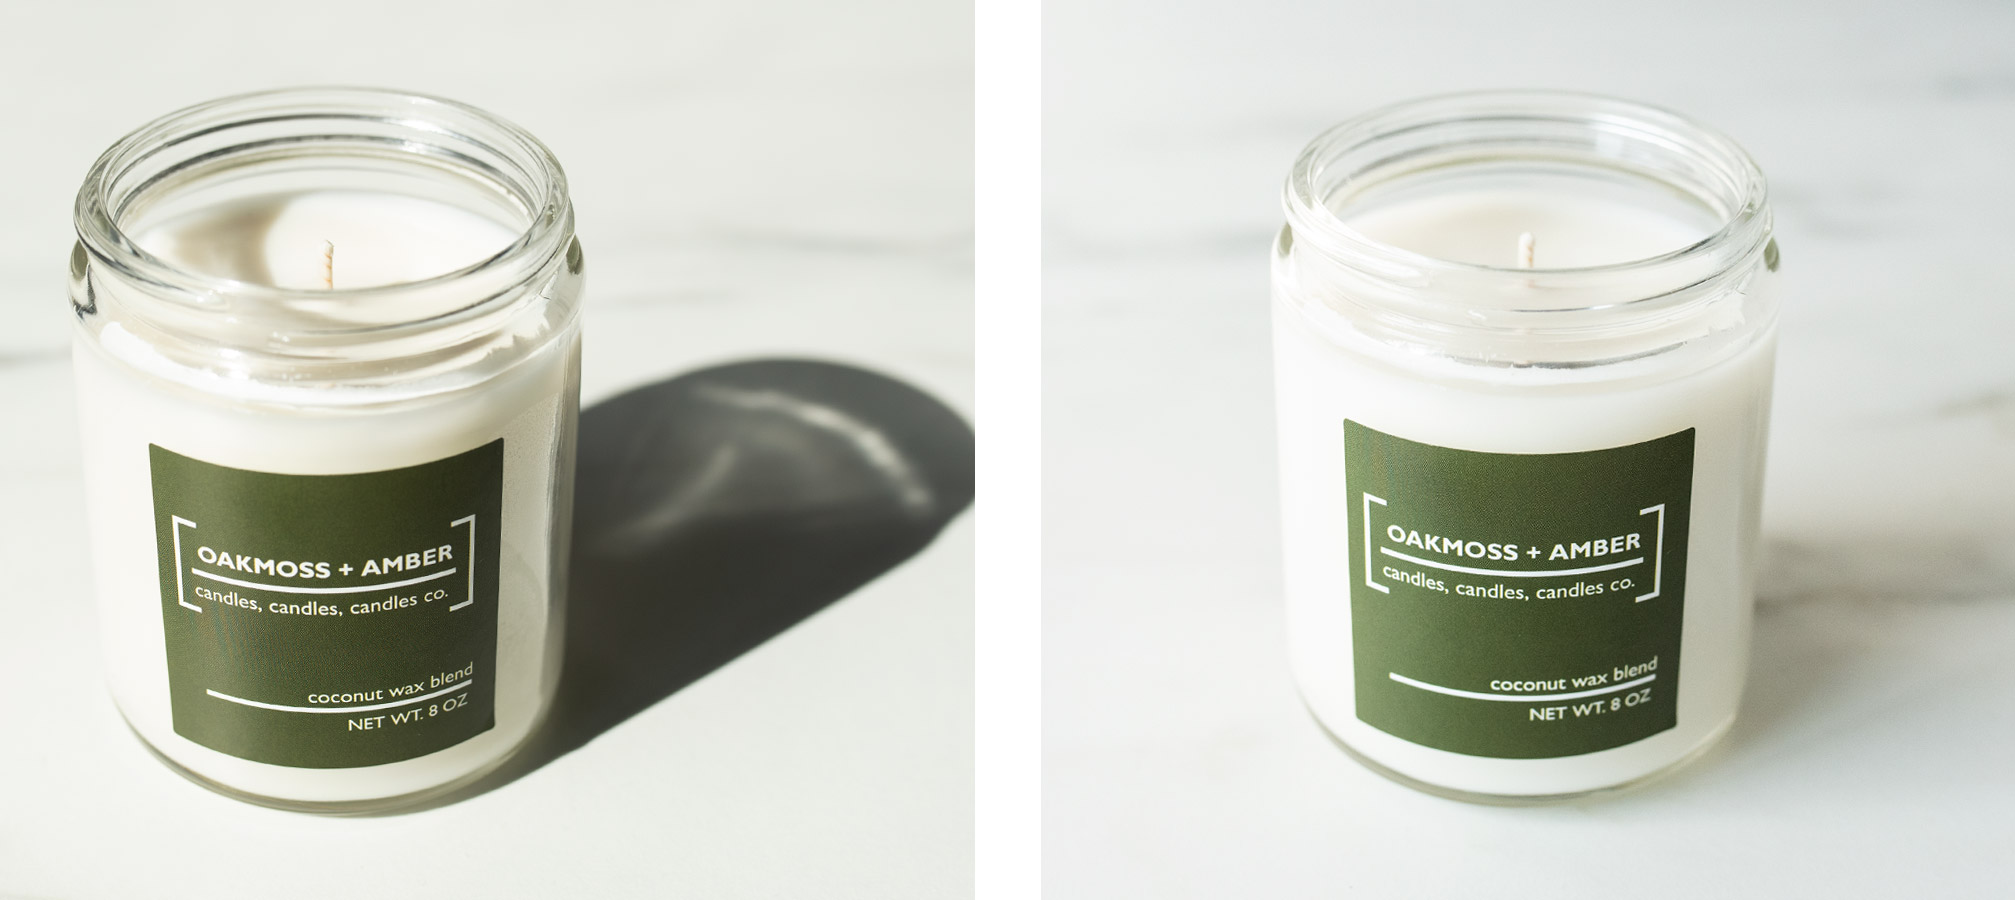 Comparison of candles photographed in direct light versus diffused natural light